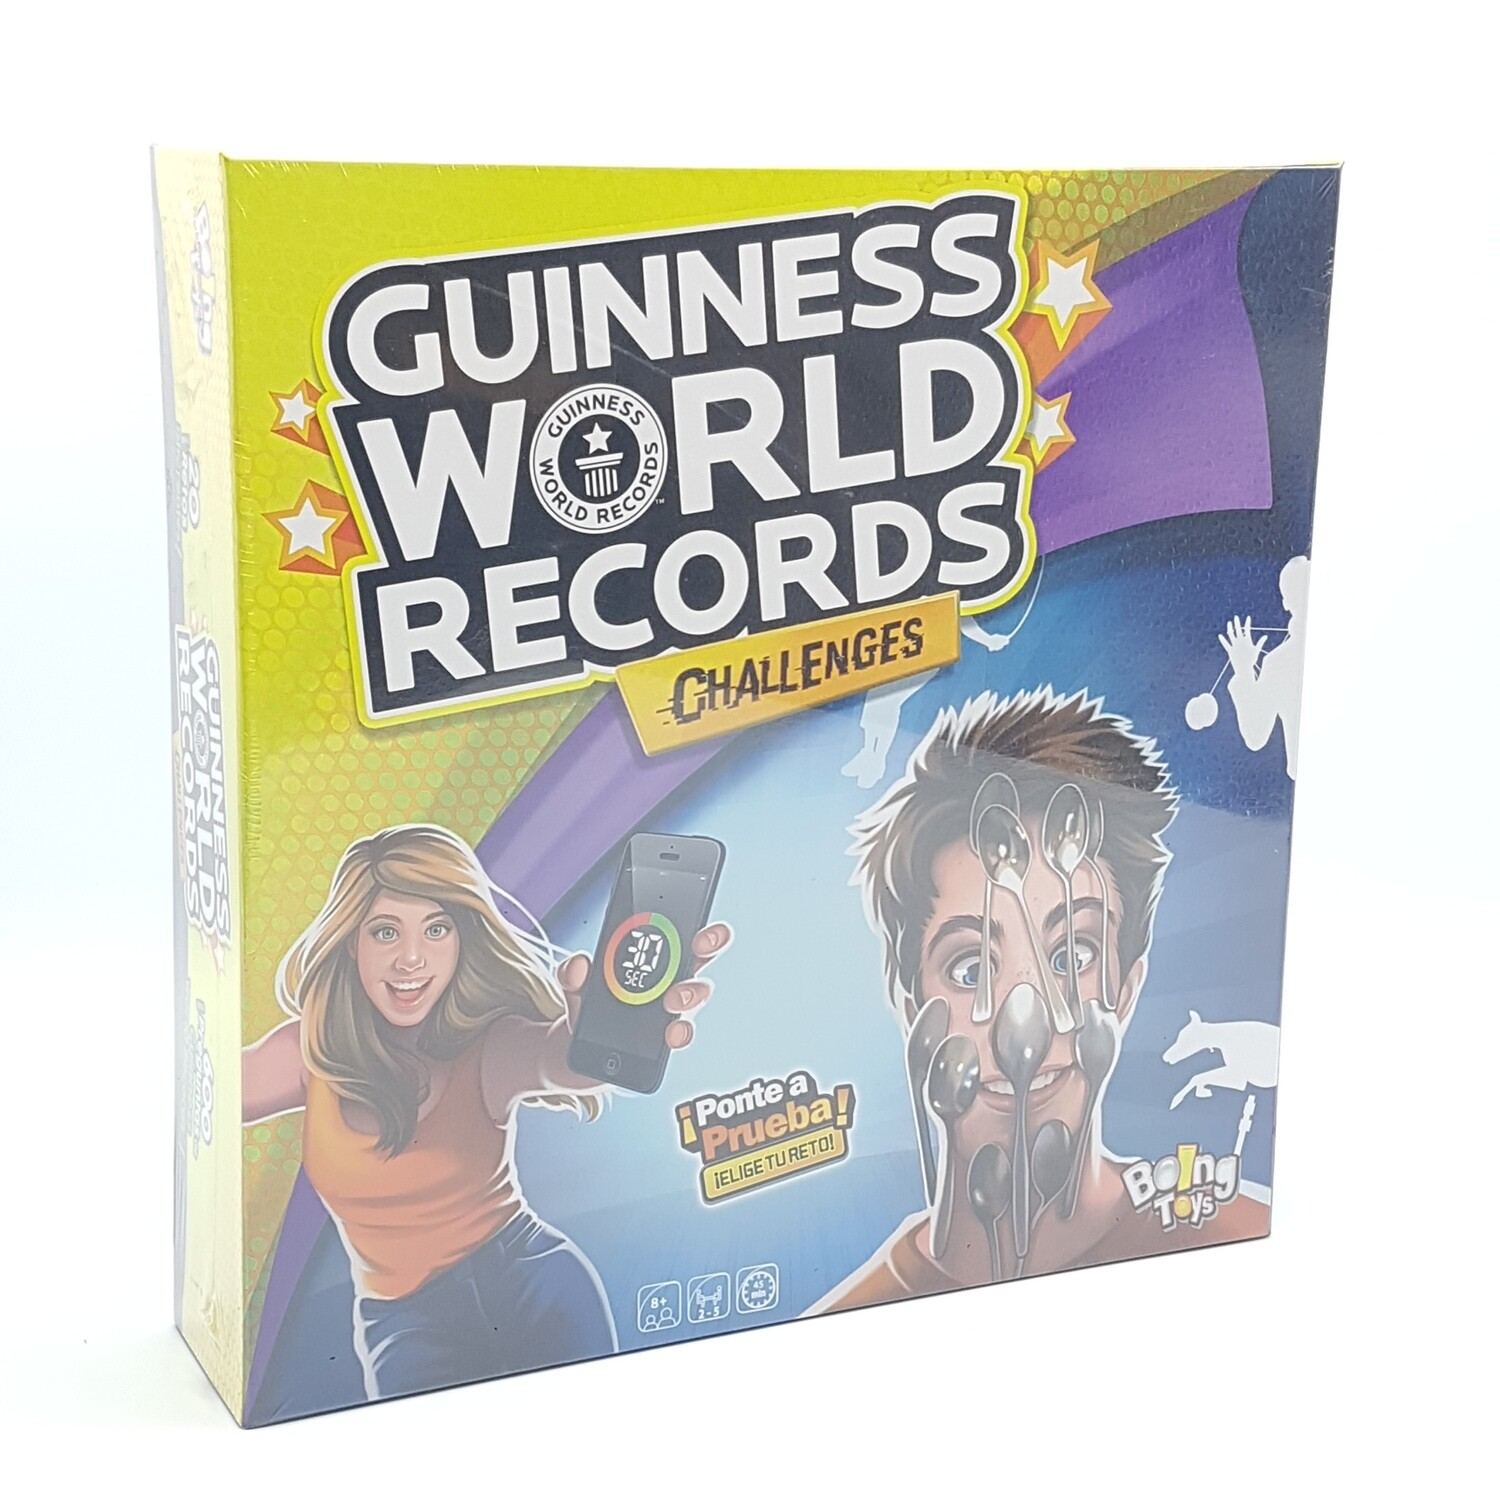 GUINNESS WORLD RECORDS CHALLENGES RETOS